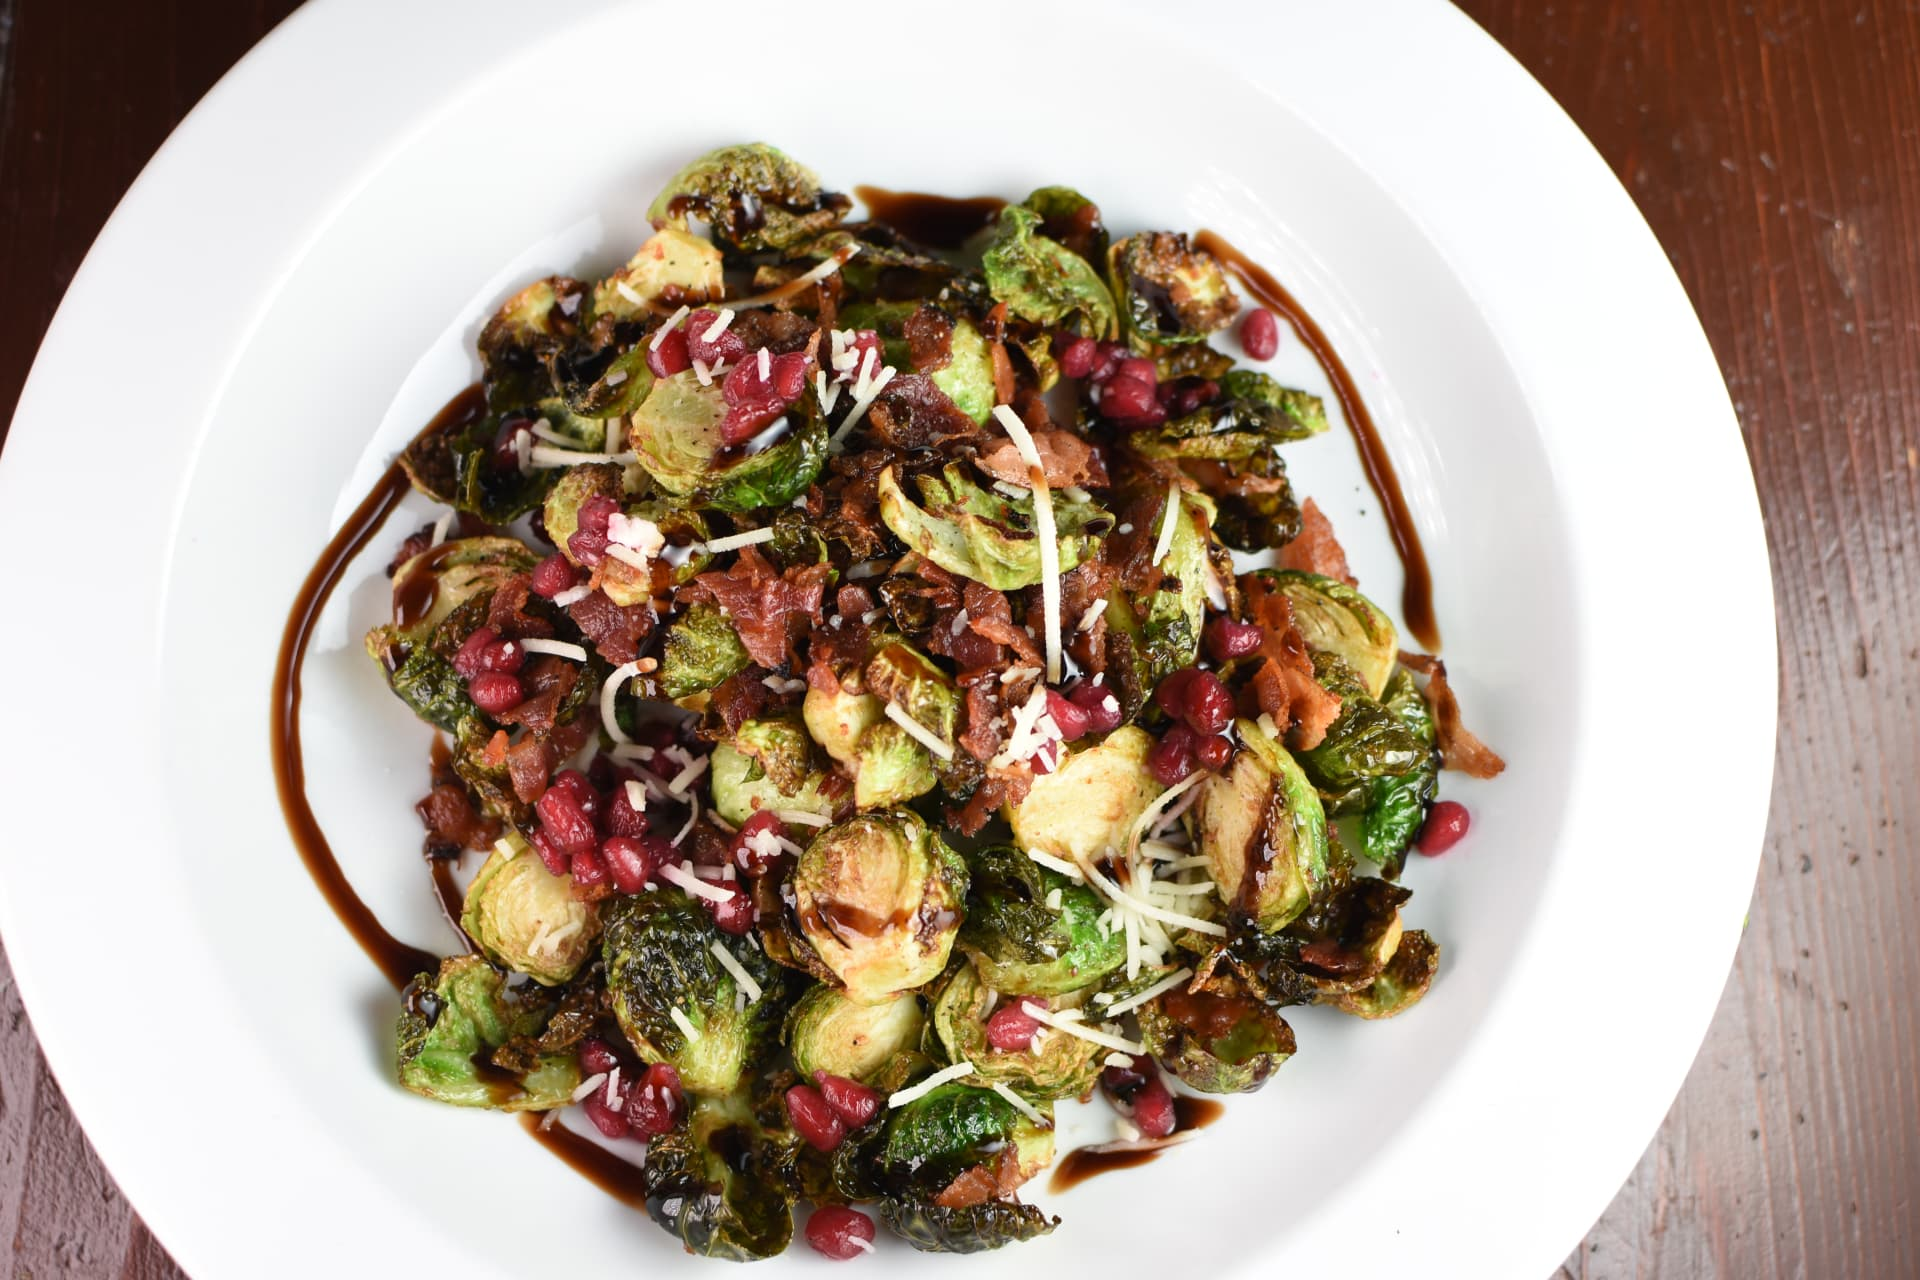 BOWL OF BRUSSELS